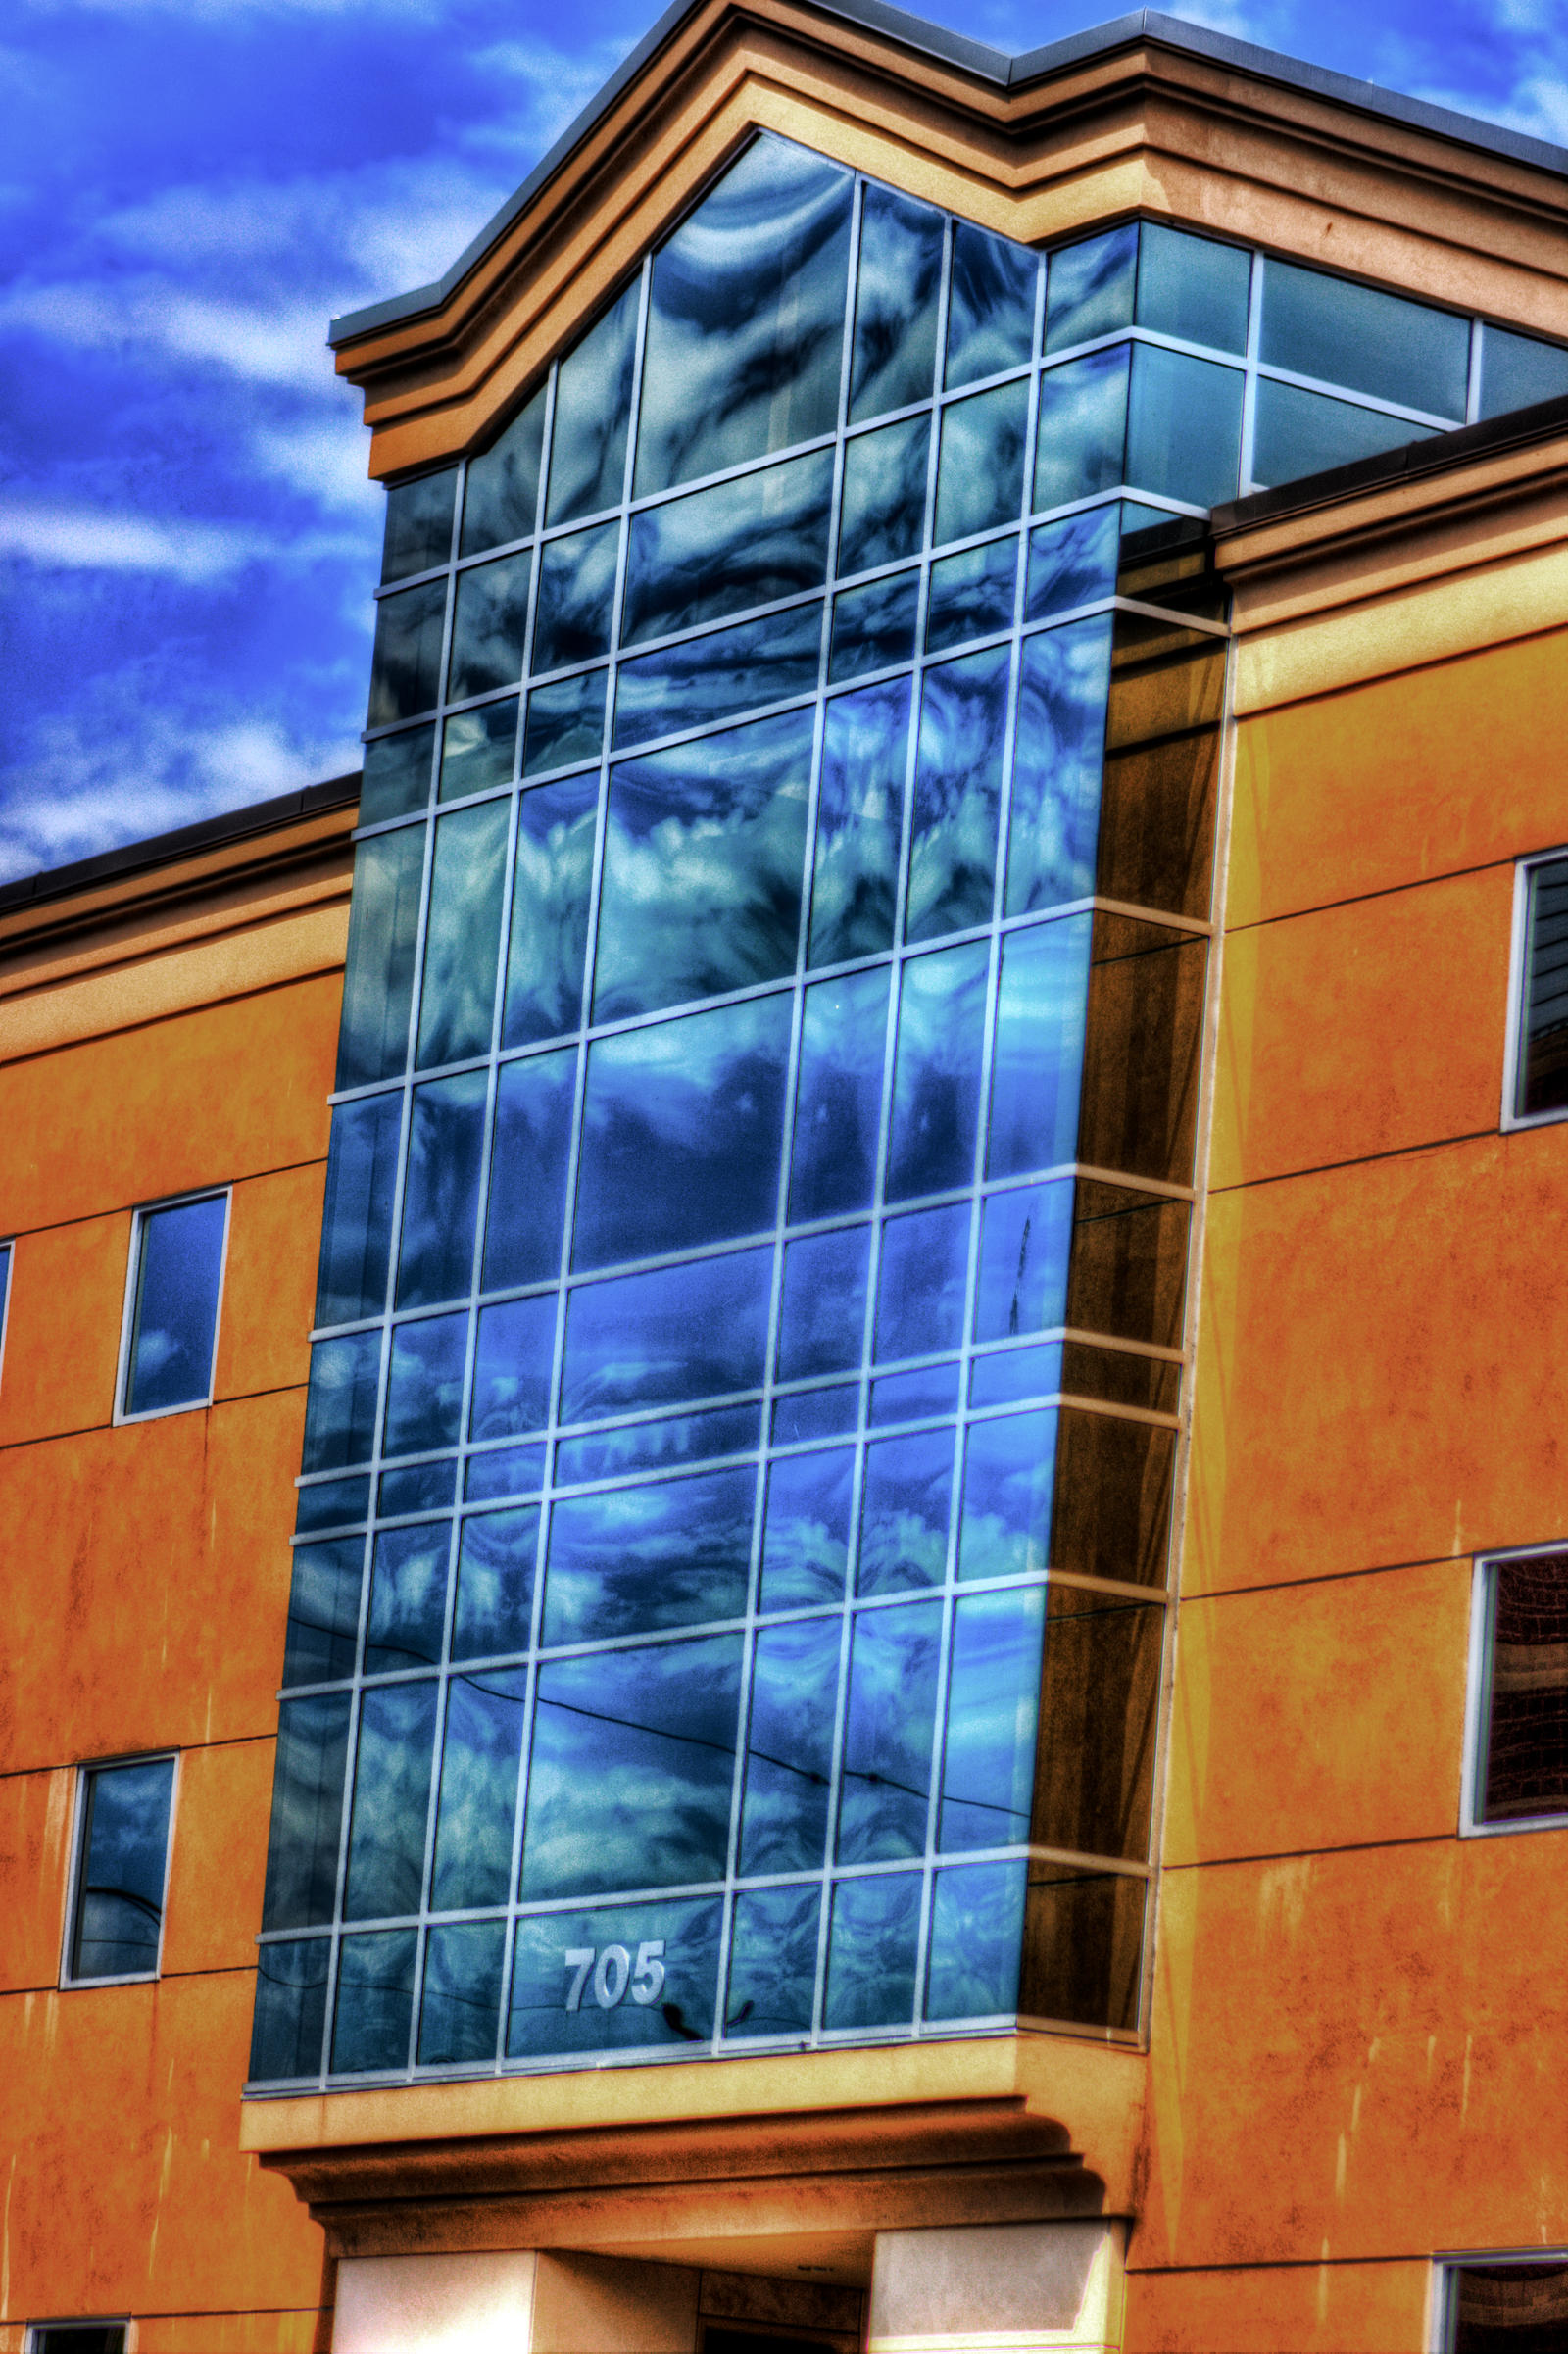 clouded building 2 by Mackingster